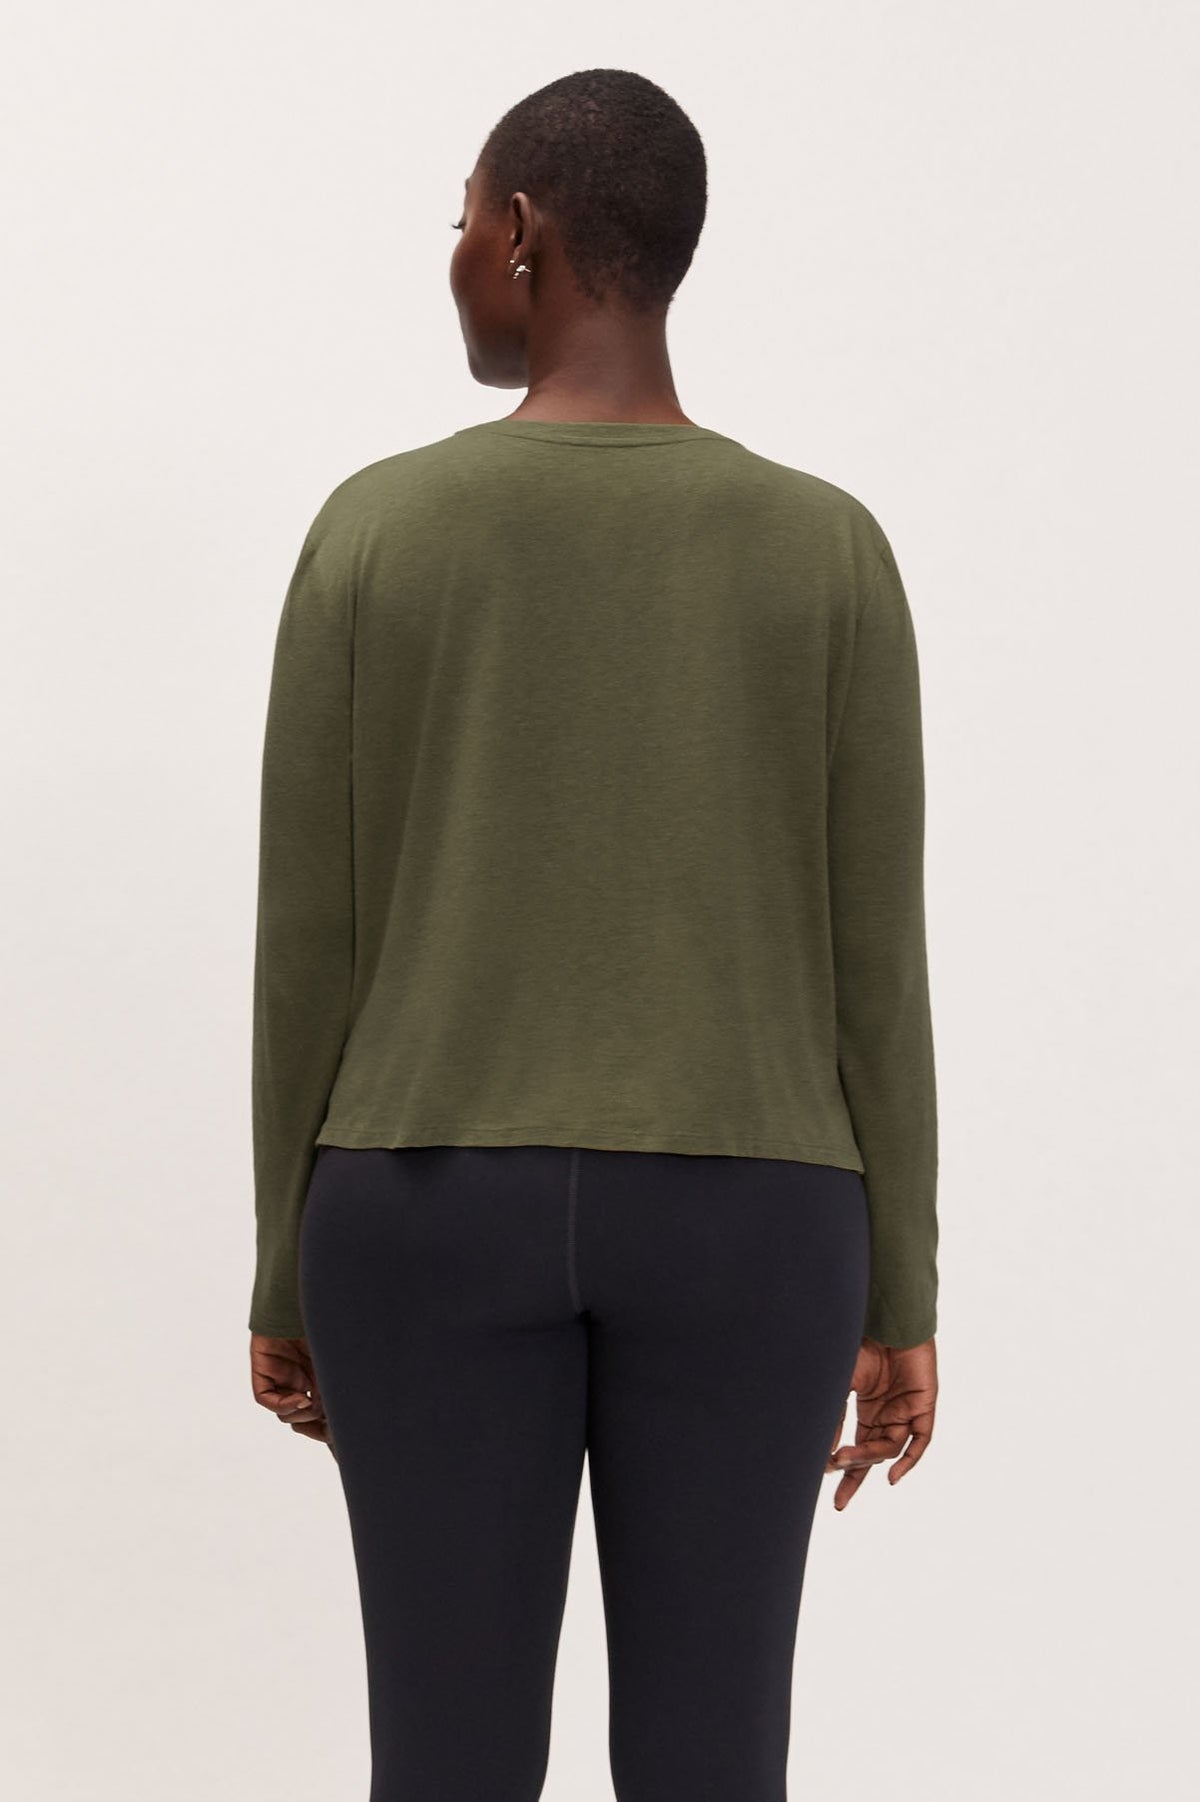 Fern Leila Long Sleeve Tee